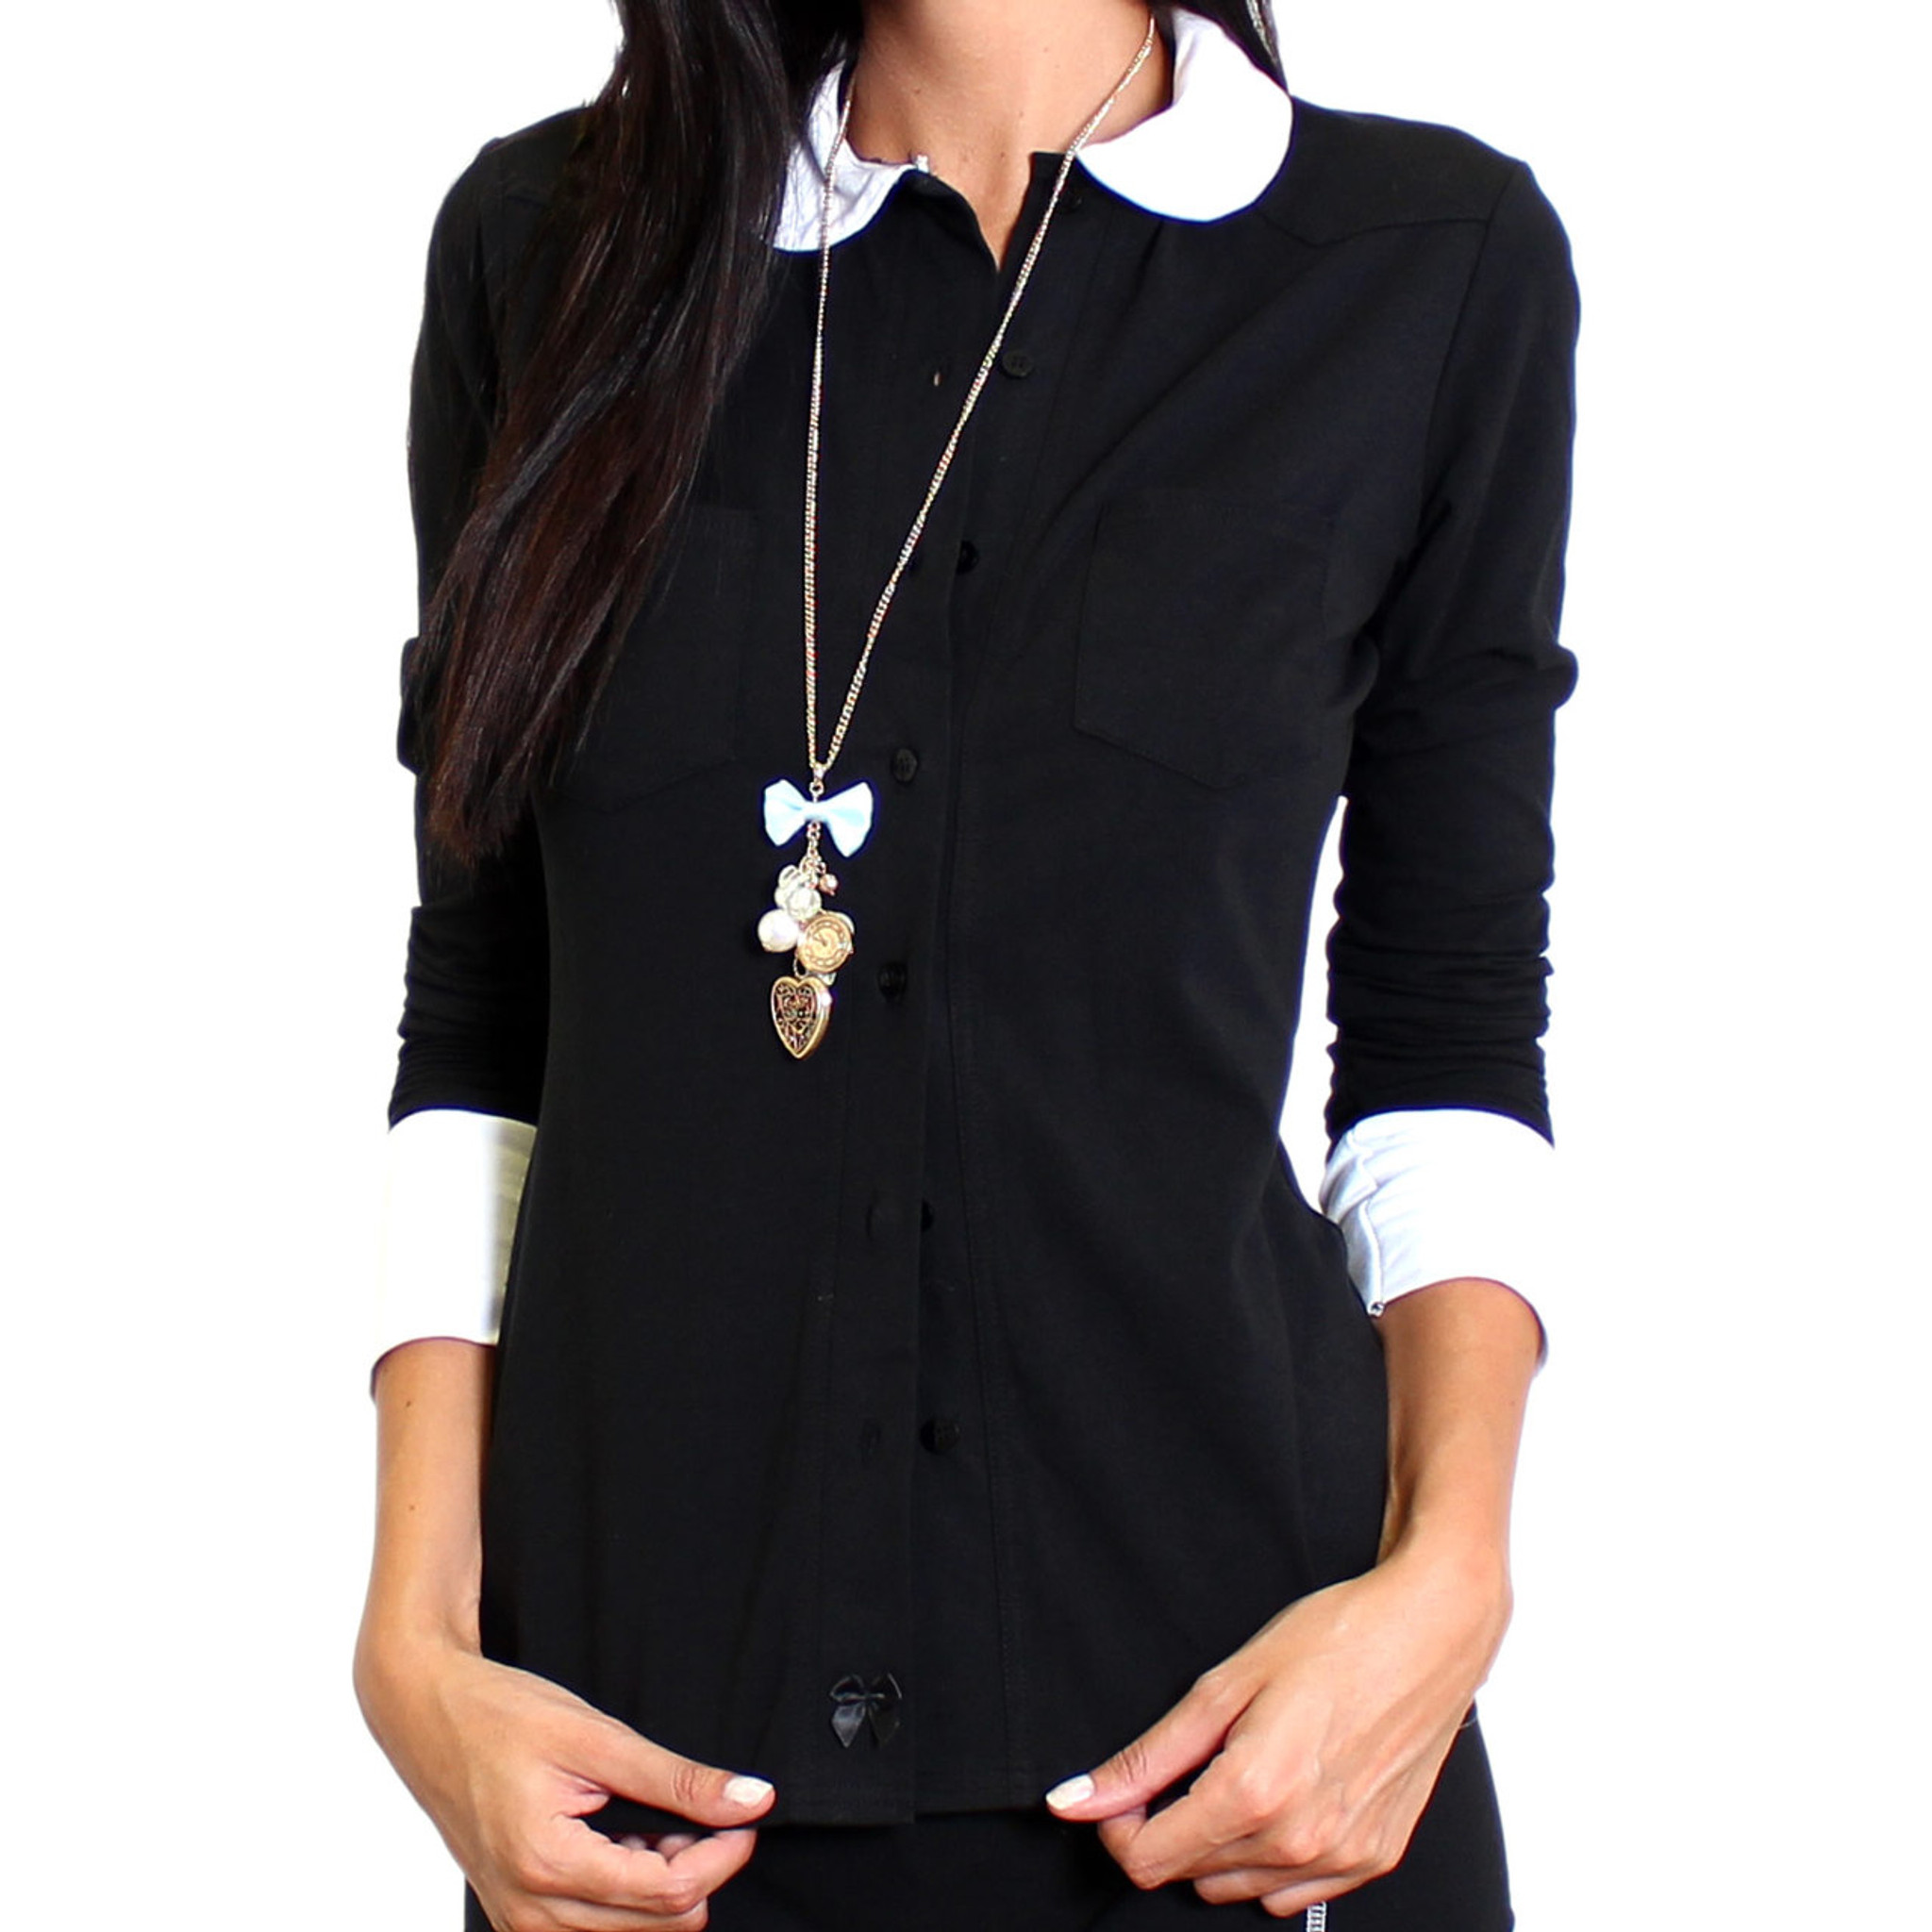 Black Equestrian Top With White Cuffs And Collar